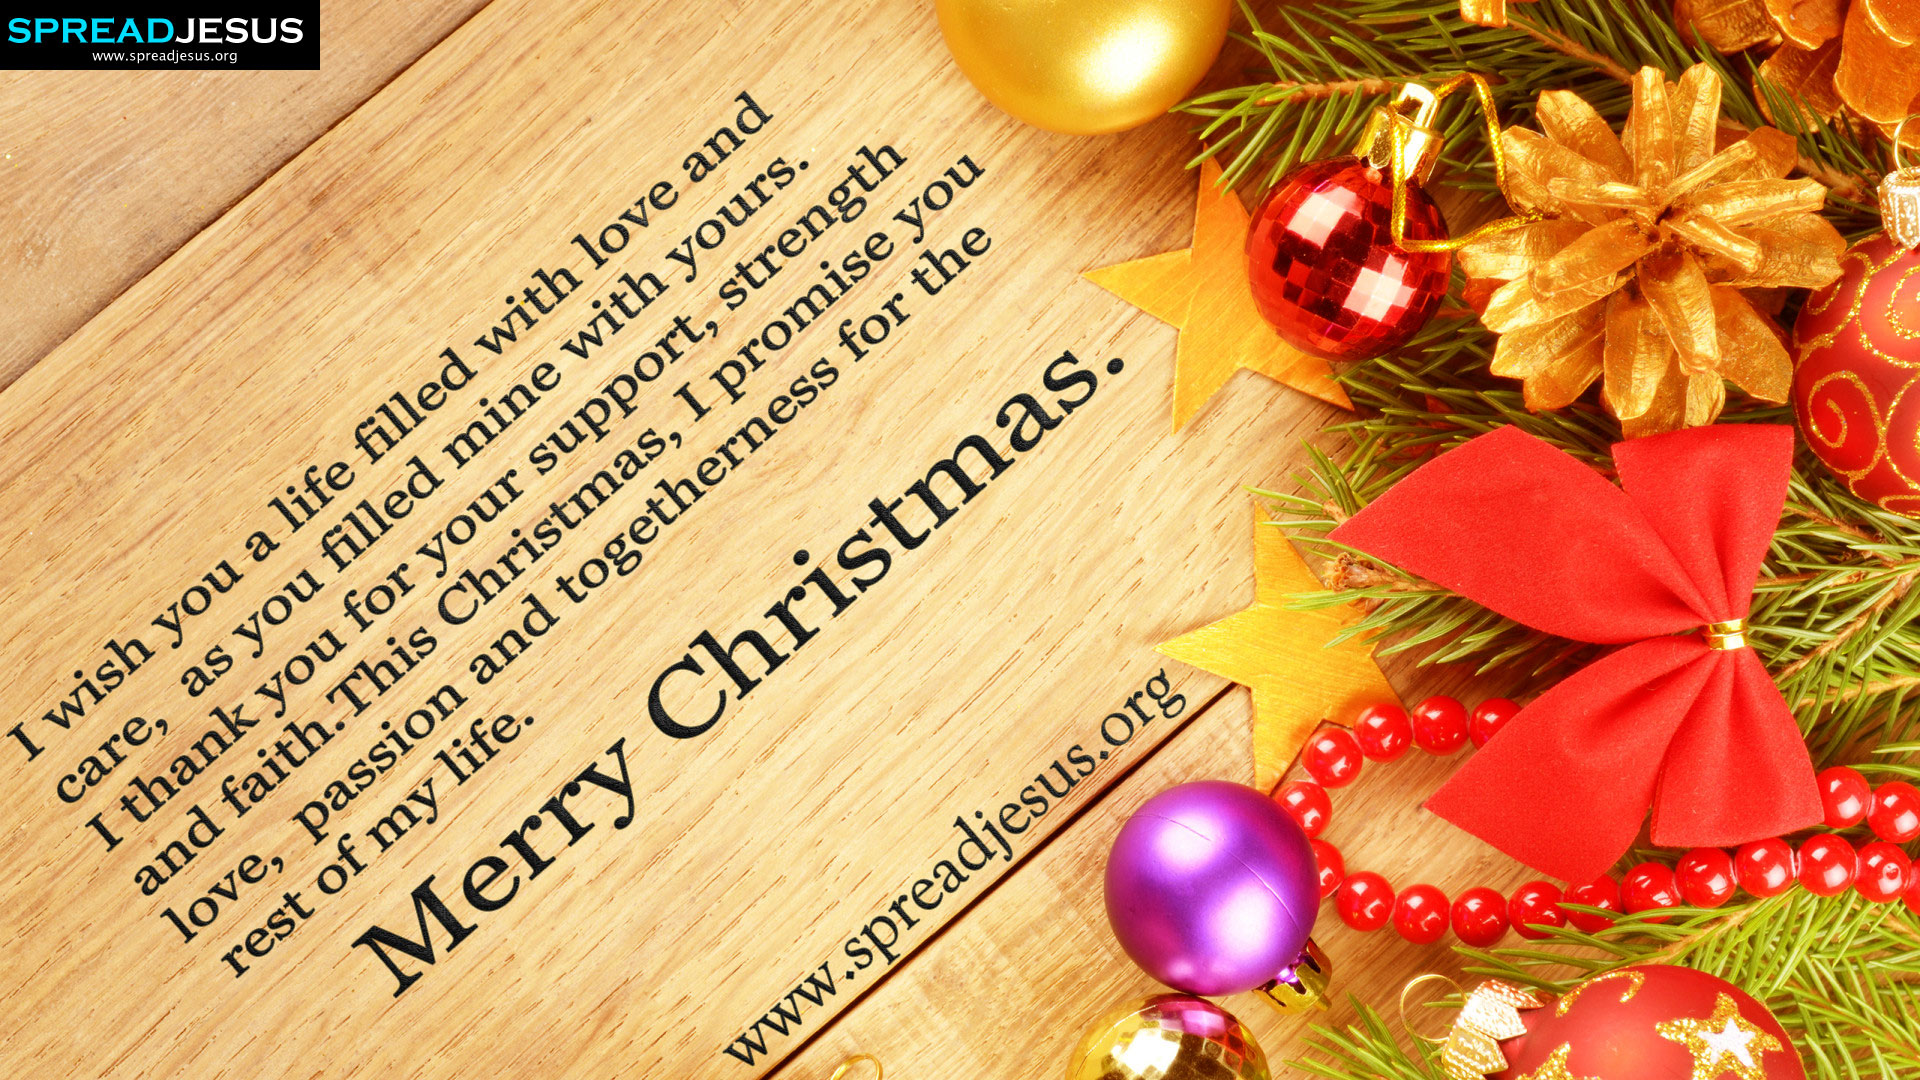 Christmas Wishes Images Hd - HD Wallpaper